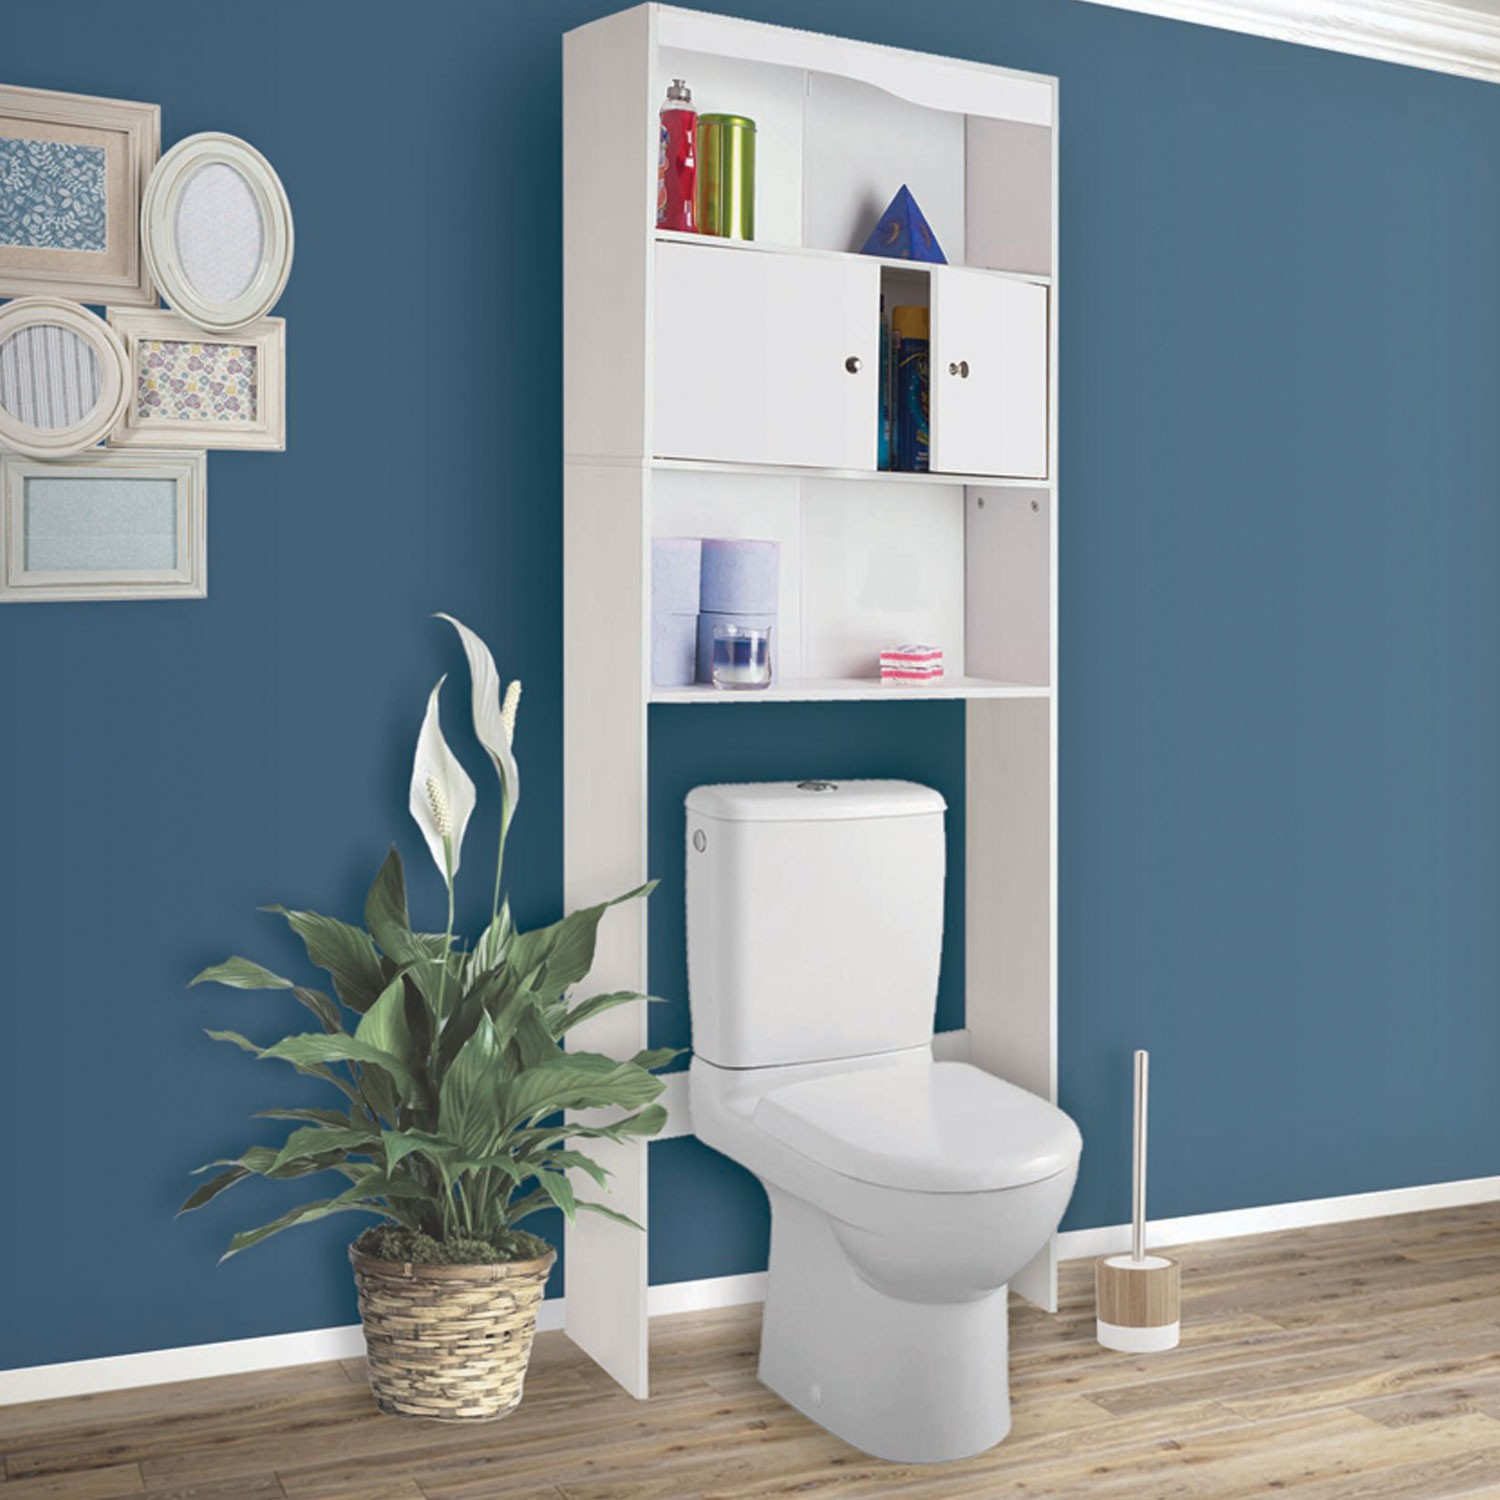 idmarket meuble wc tag re bois blanc et gris gain de place pour toilettes 3 portes www. Black Bedroom Furniture Sets. Home Design Ideas